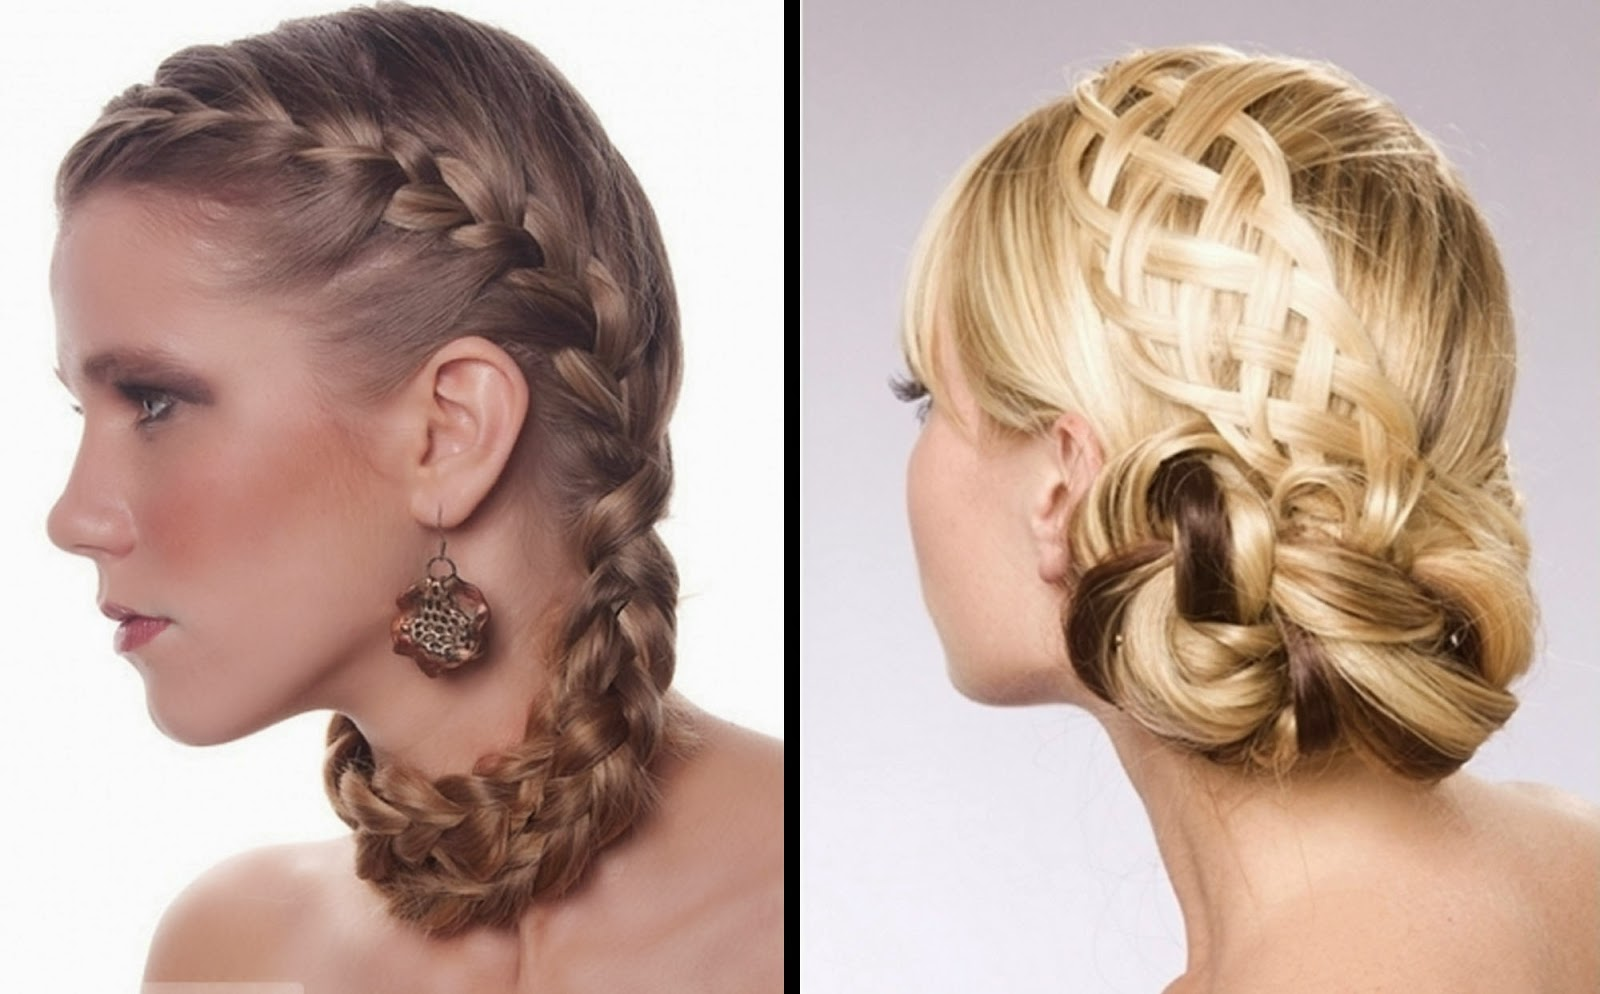 Astounding How To Do Prom Hairstyles Updos Hairstyle Pictures Short Hairstyles Gunalazisus